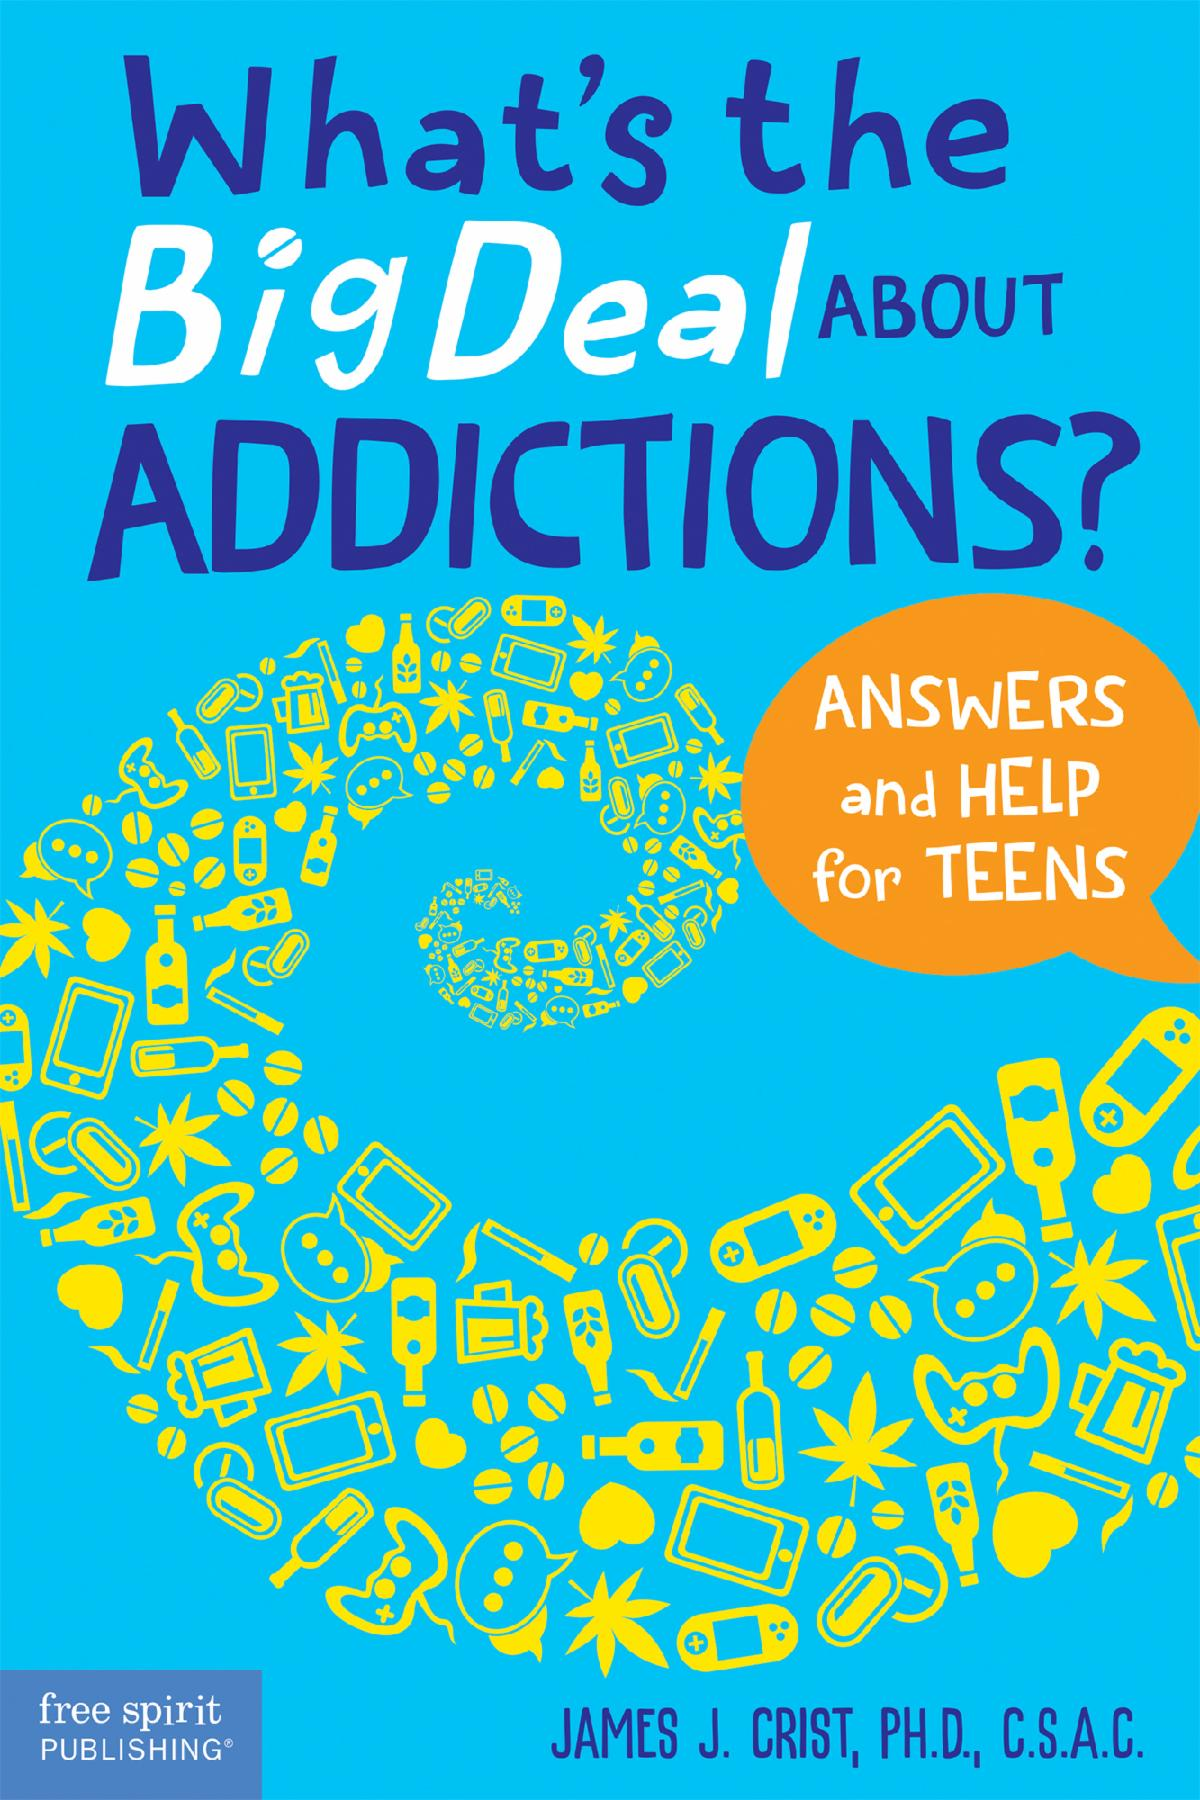 What's the Big Deal About Addictions